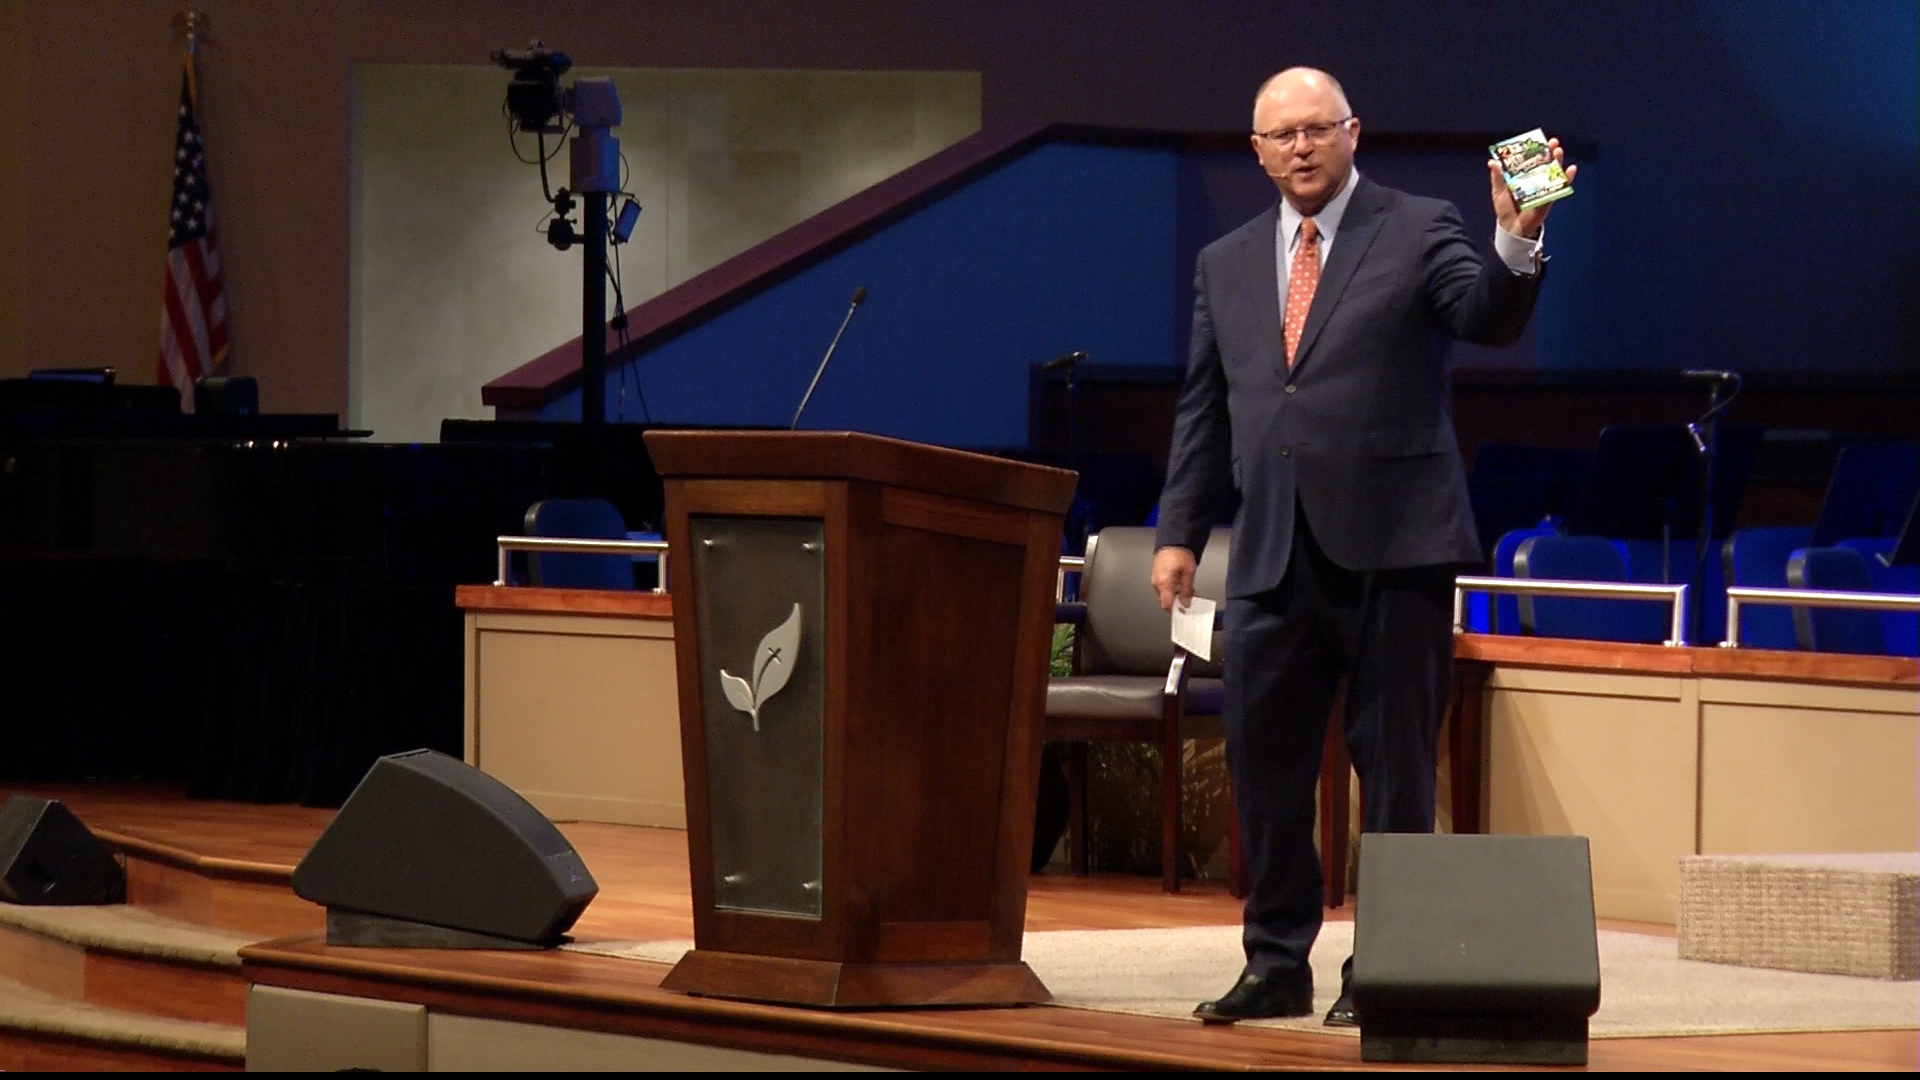 Pastor Paul Chappell: How to Witness to Family and Friends